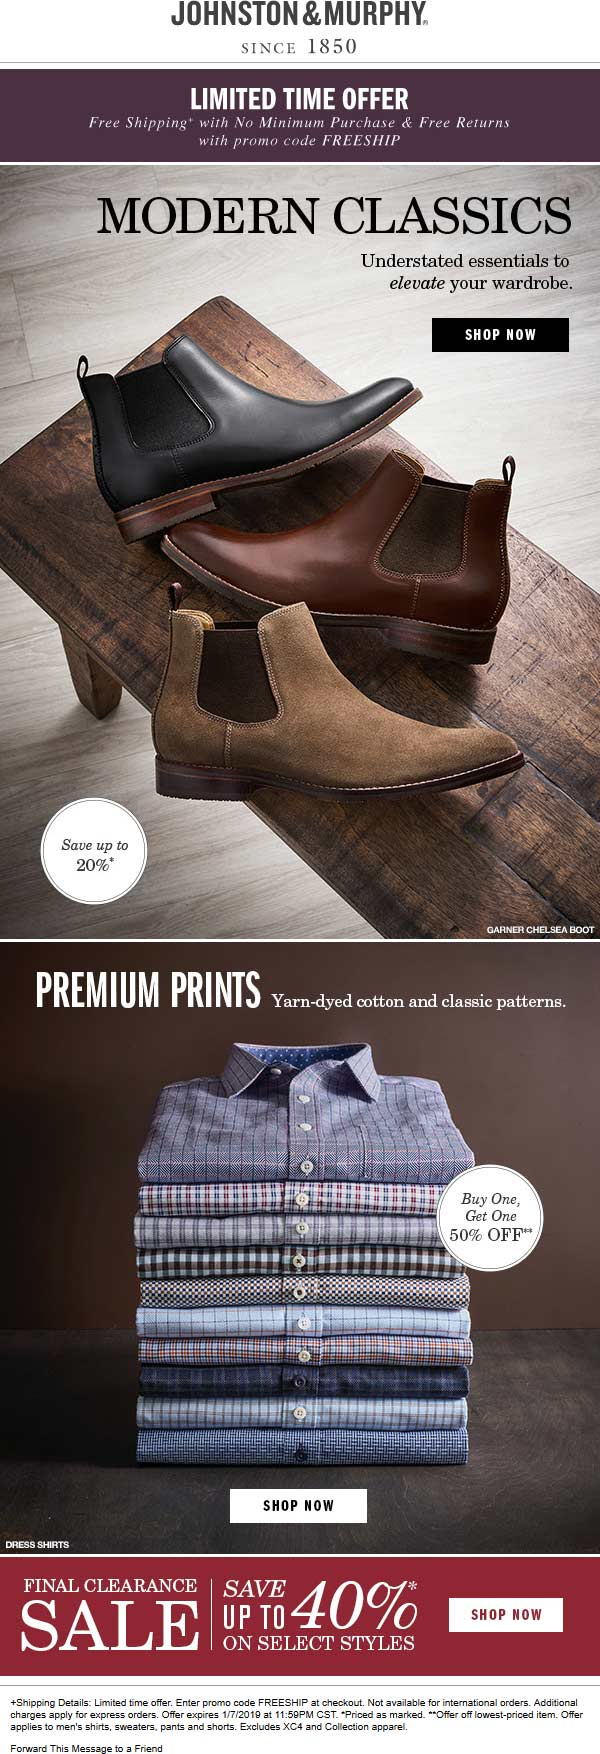 Johnston & Murphy Coupon August 2020 Second print shirt 50% off at Johnston & Murphy, or online with free shipping via promo code FREESHIP